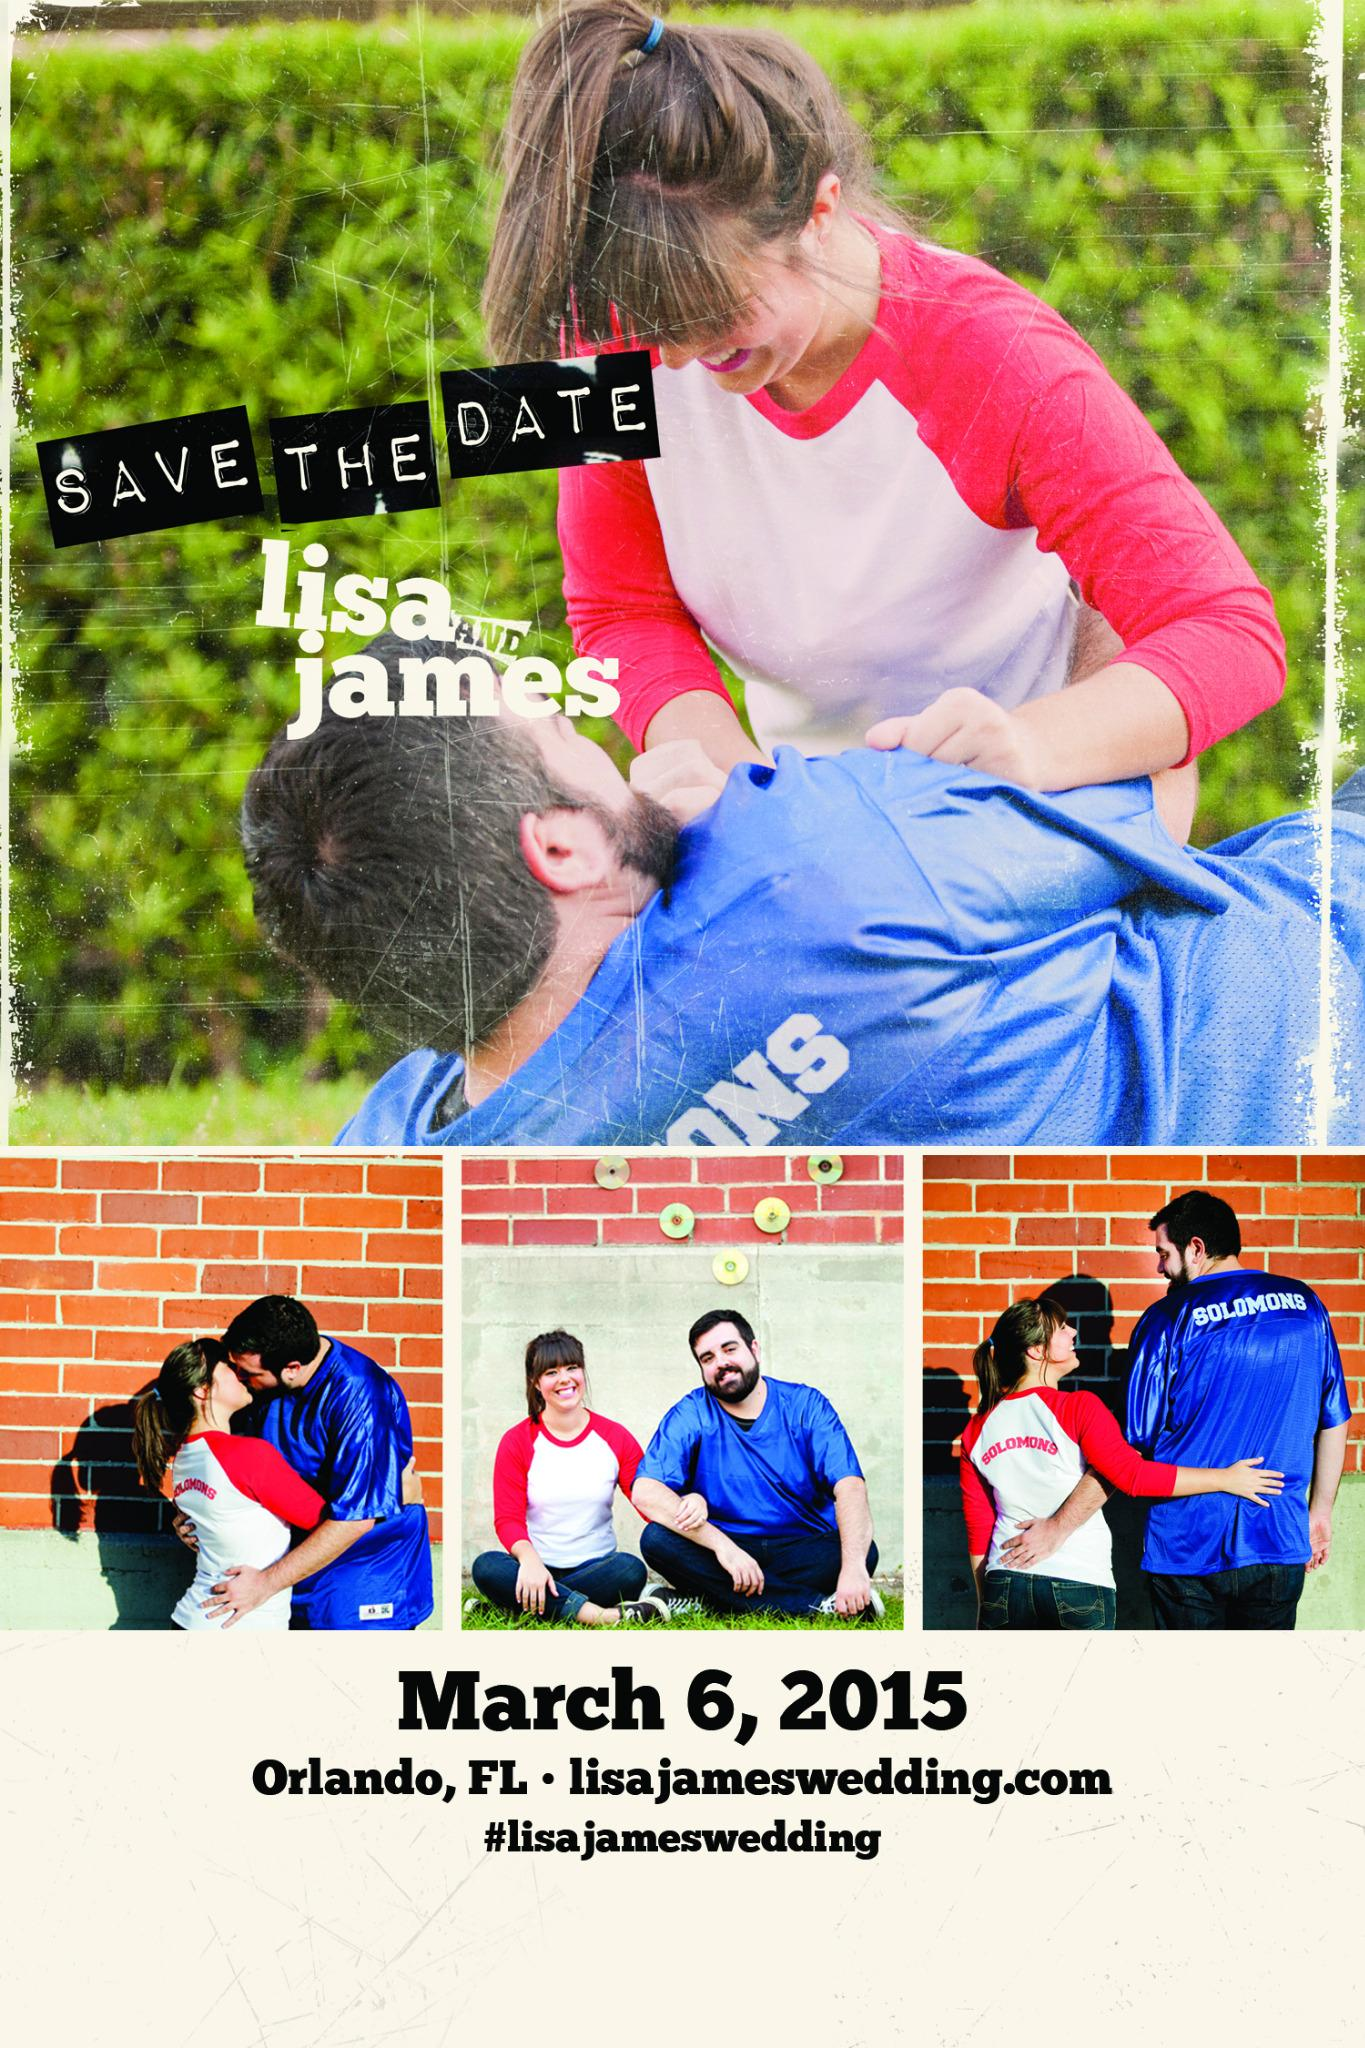 RT @XChadballX: coolest save the date invitations! RT @SavesTheJames: @XChadballX my fiance and I made these for our wedding. http://t.co/m?